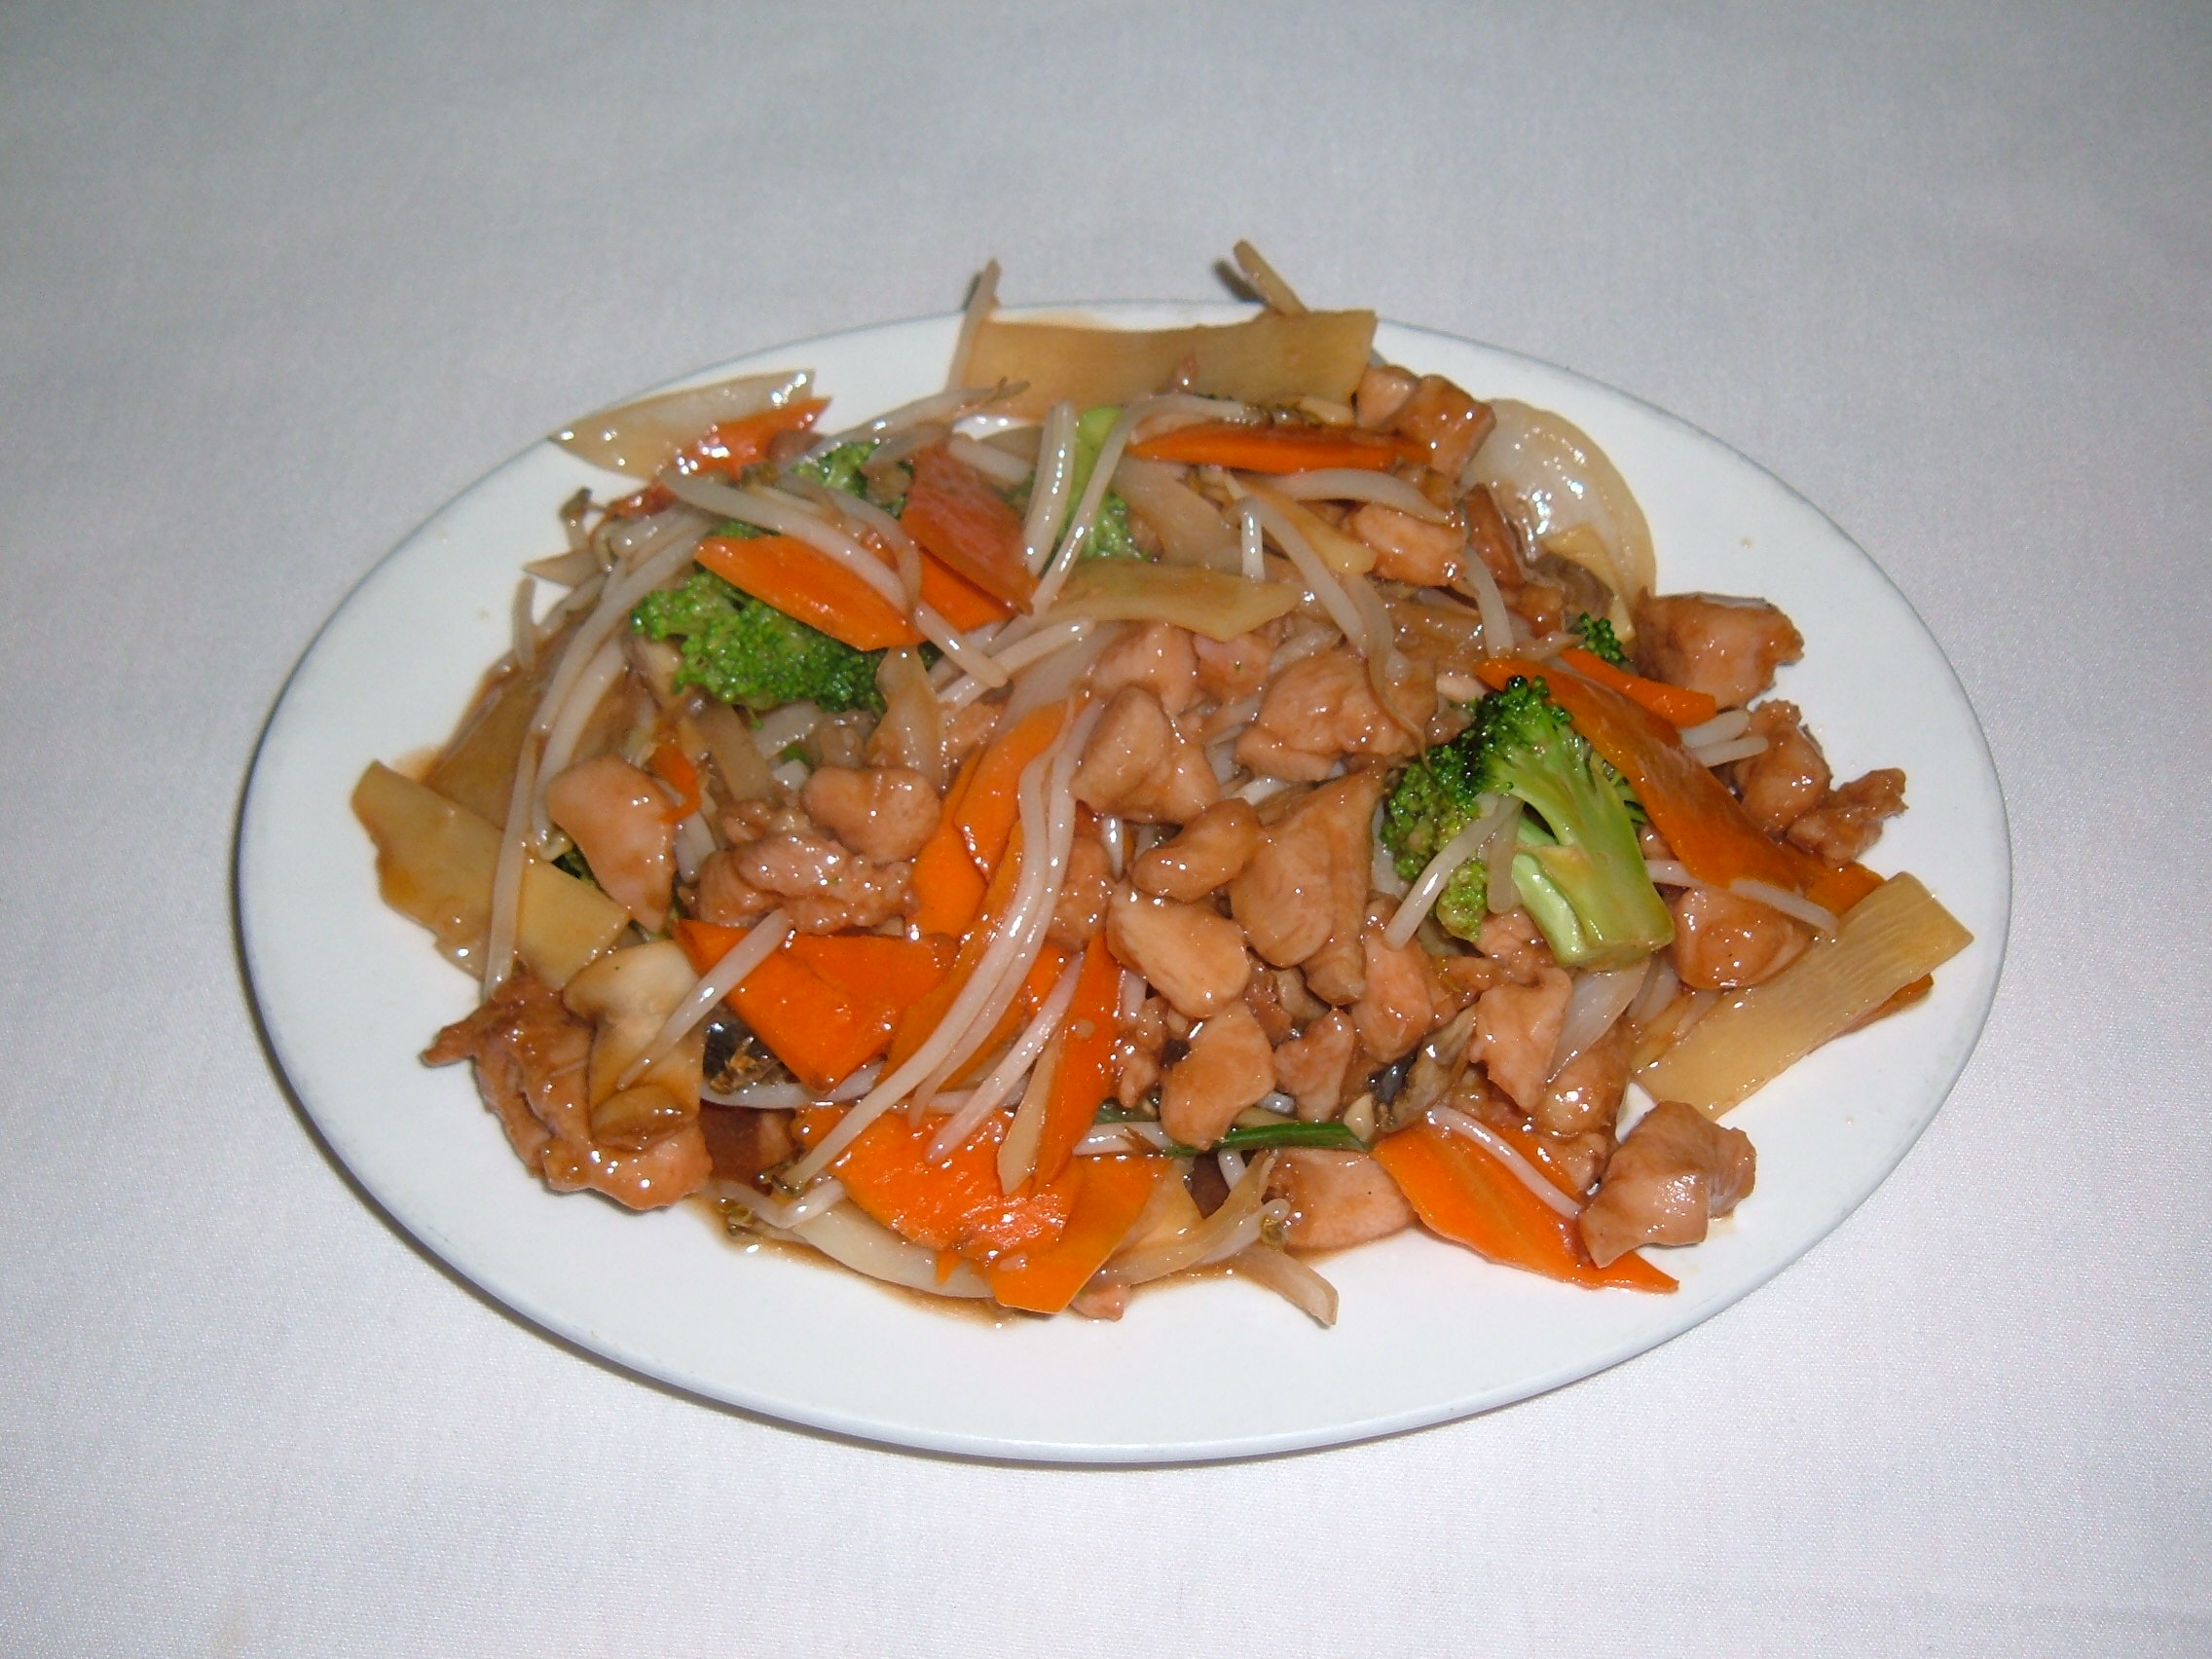 Recipes for pork chop suey